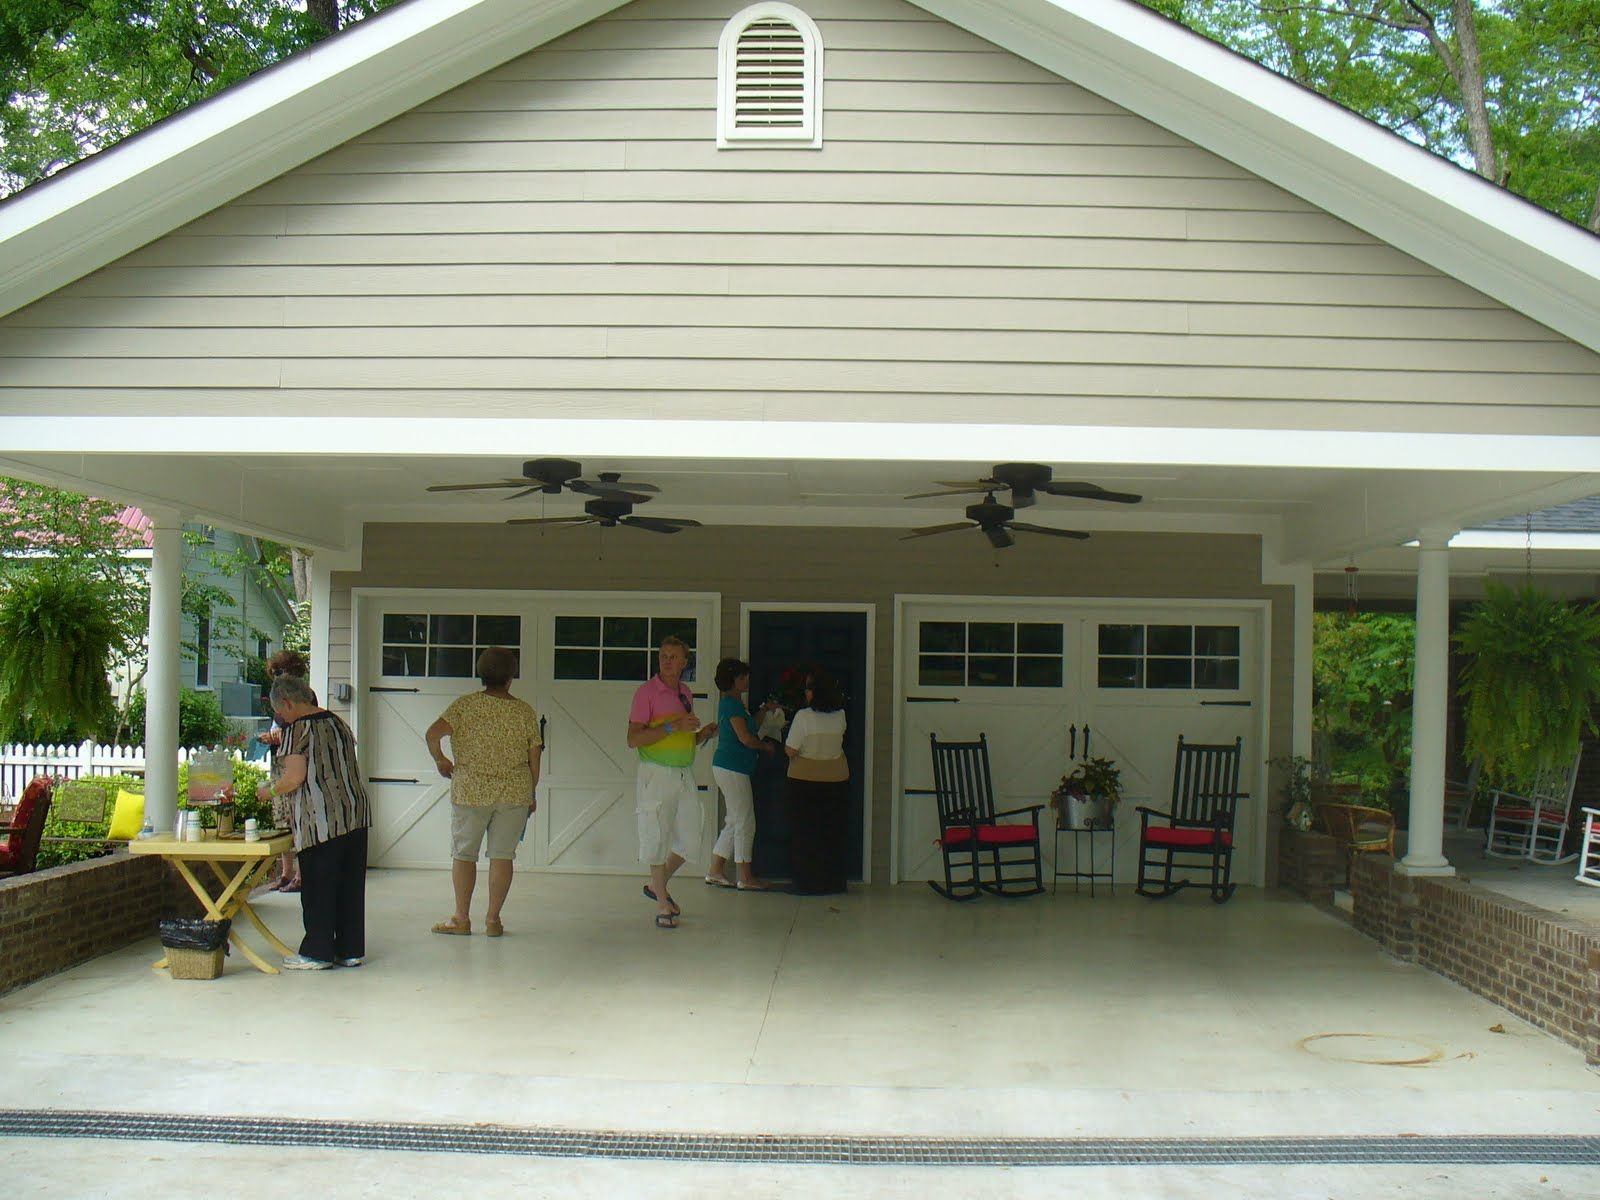 Building A Carport Patio Notice The Ceiling Fans Isn T That A